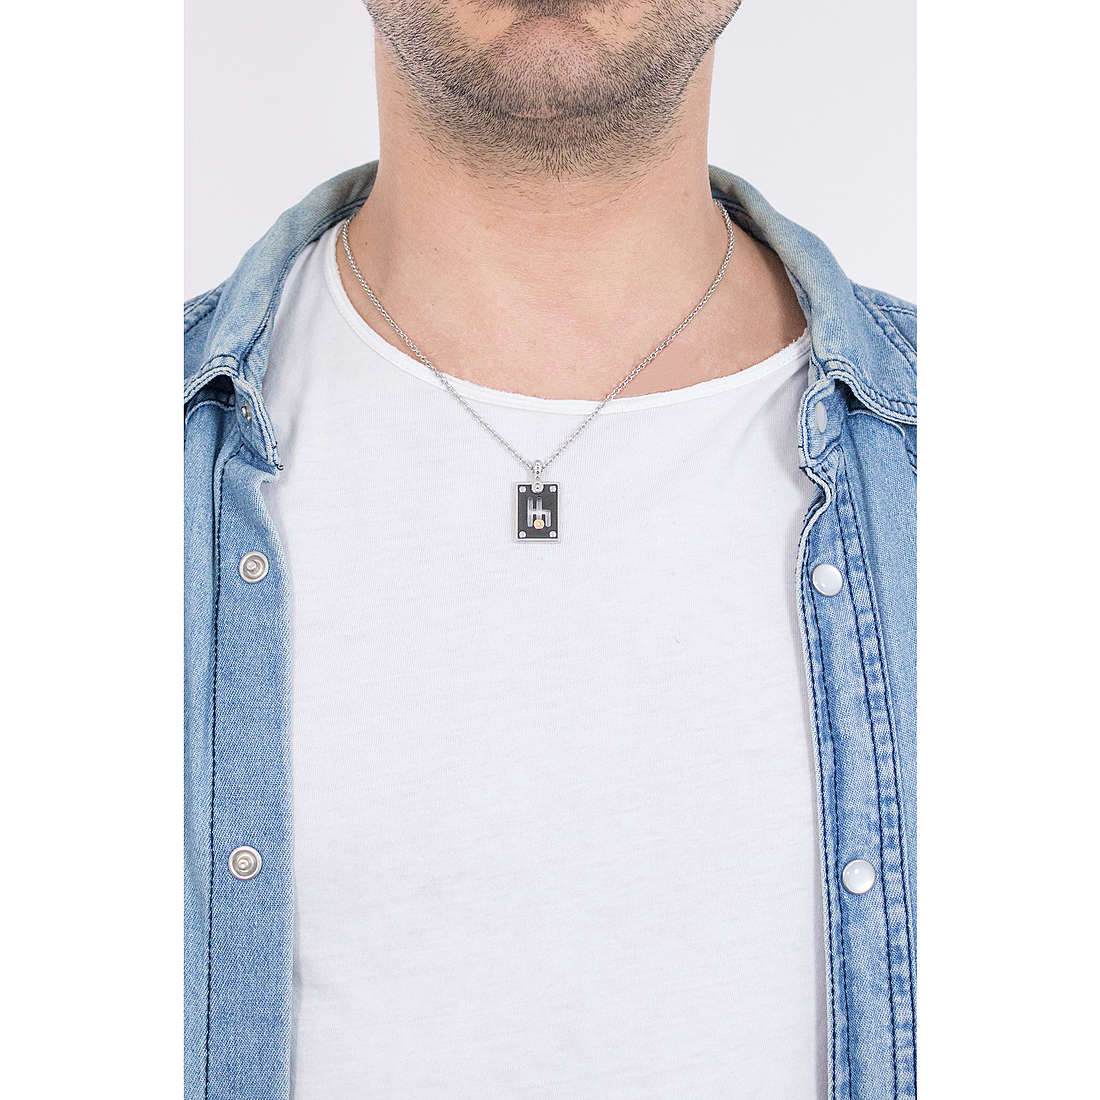 Comete necklaces Cambio man UGL 531 photo wearing